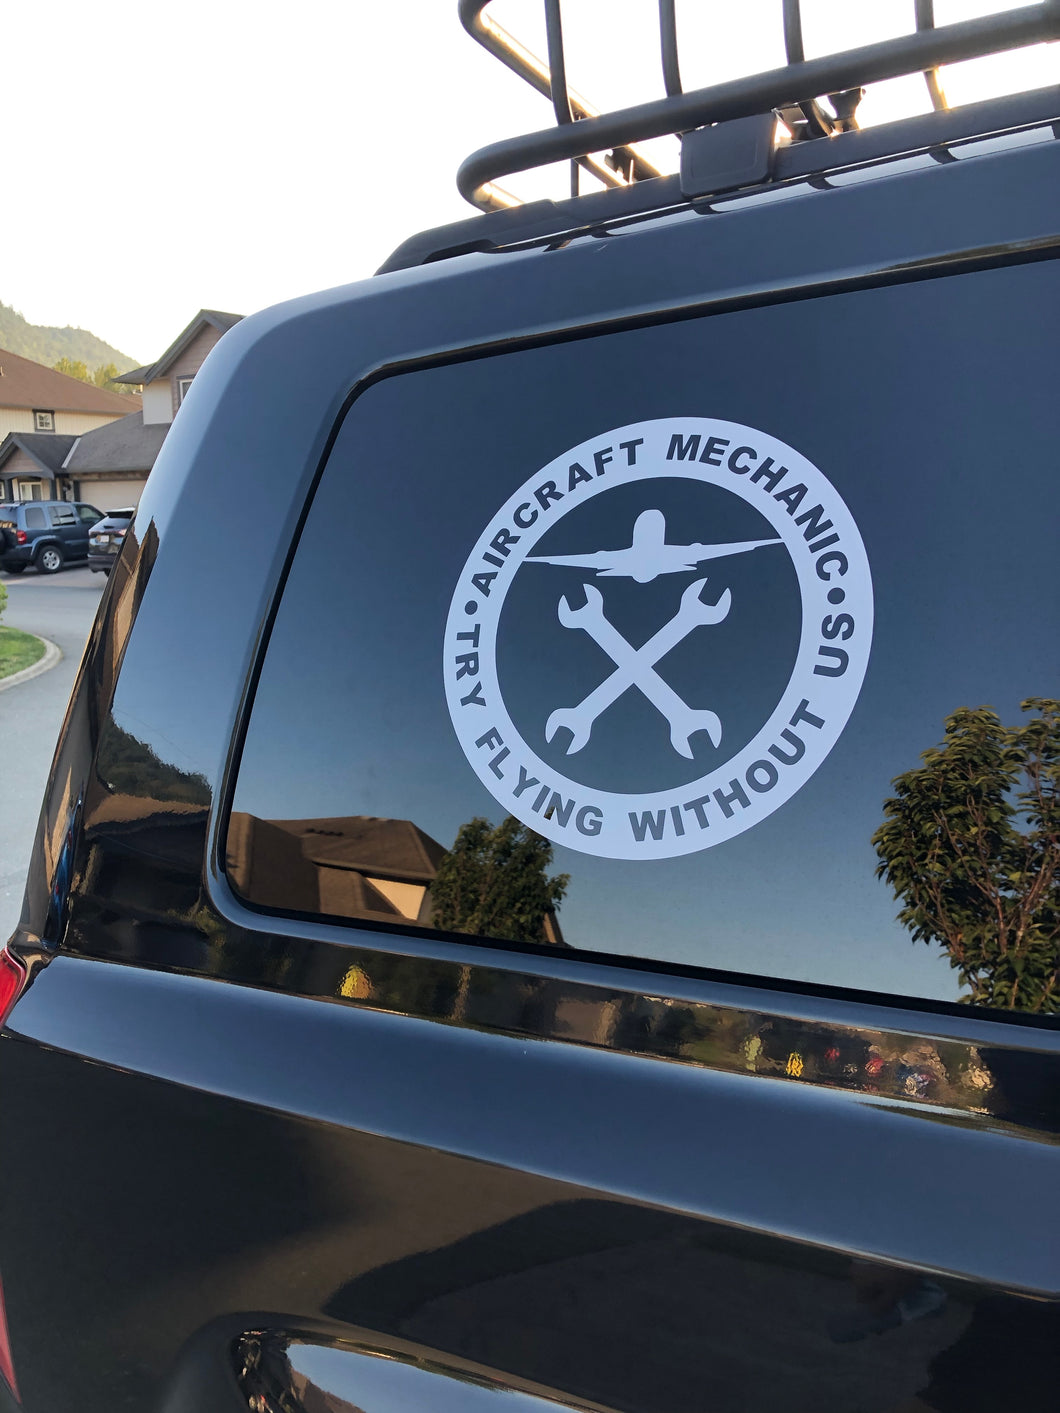 'Aircraft Mechanic Try Flying Without Us' Premium Vinyl Decal